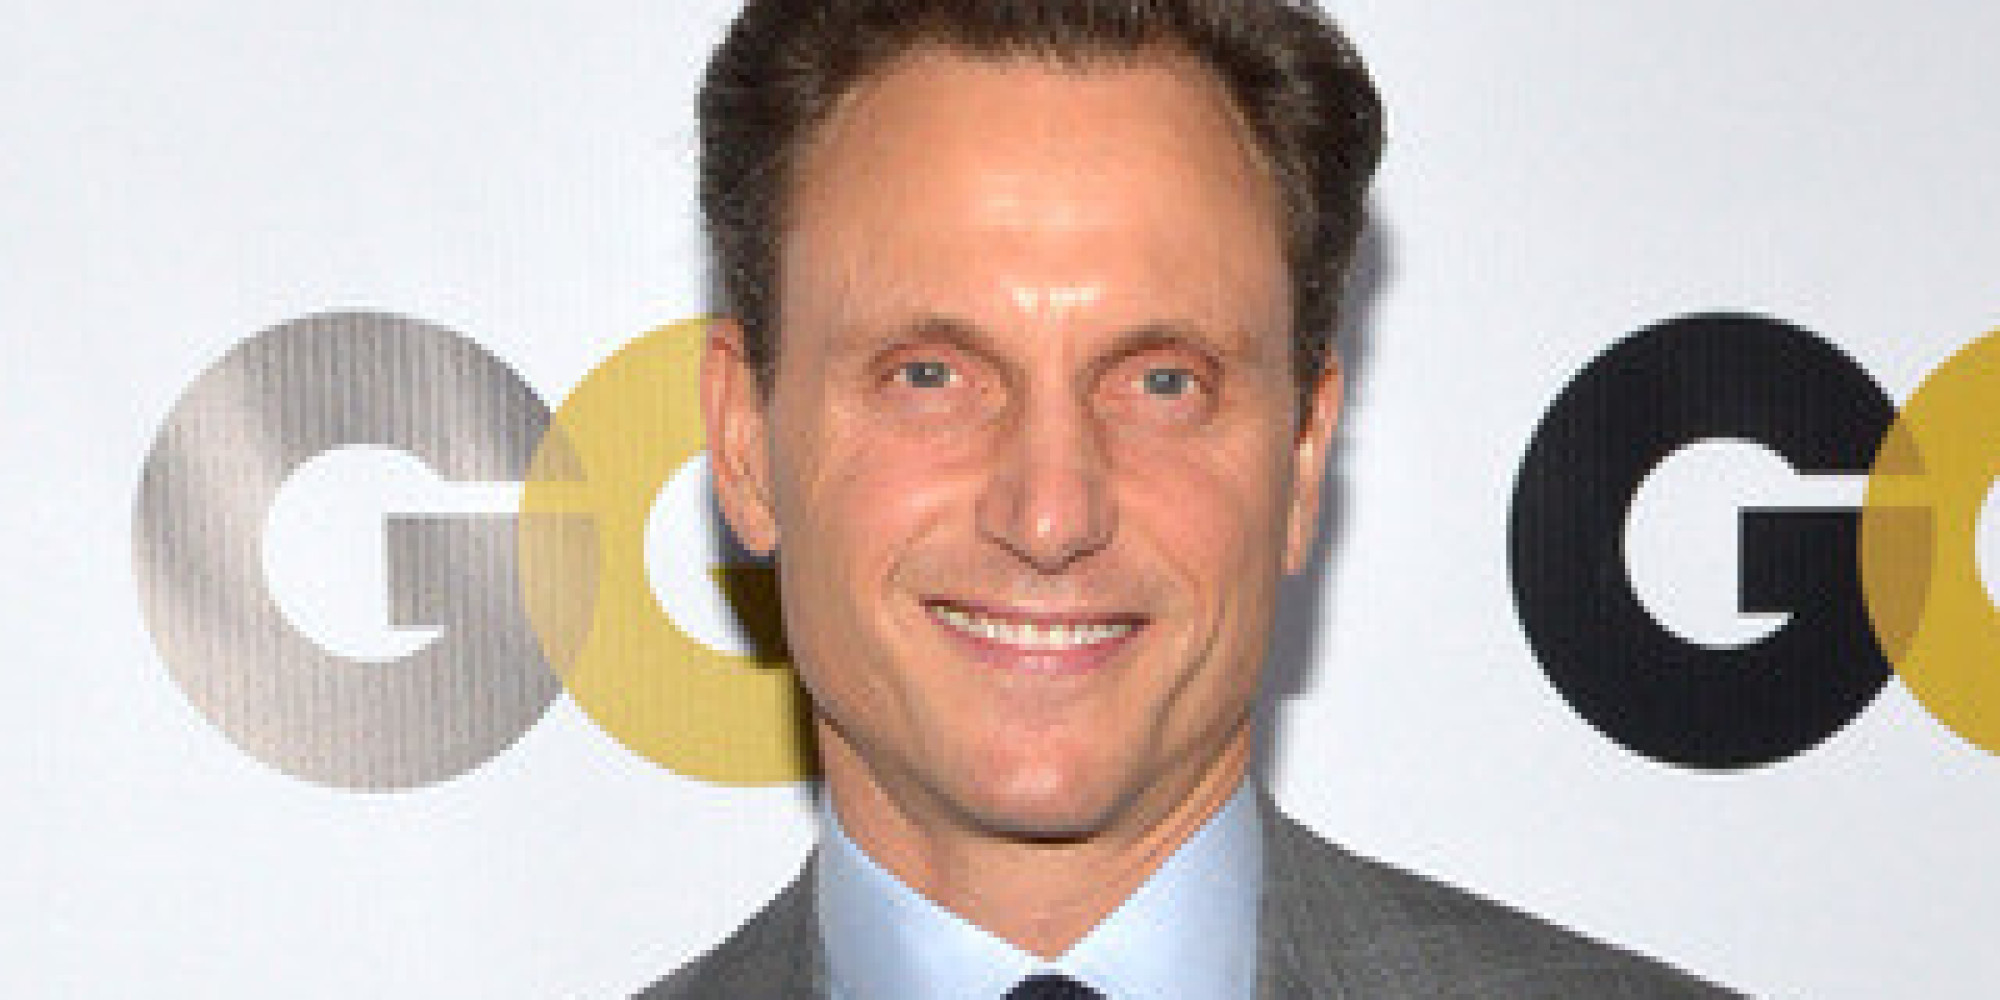 tony goldwyn filmstony goldwyn ghost, tony goldwyn height, tony goldwyn photos, tony goldwyn interview, tony goldwyn films, tony goldwyn fan club, tony goldwyn instagram, tony goldwyn, tony goldwyn twitter, tony goldwyn net worth, tony goldwyn tumblr, tony goldwyn imdb, tony goldwyn young, tony goldwyn tarzan, tony goldwyn dexter, tony goldwyn divergent, tony goldwyn gay, tony goldwyn news, tony goldwyn jimmy kimmel, tony goldwyn et sa femme